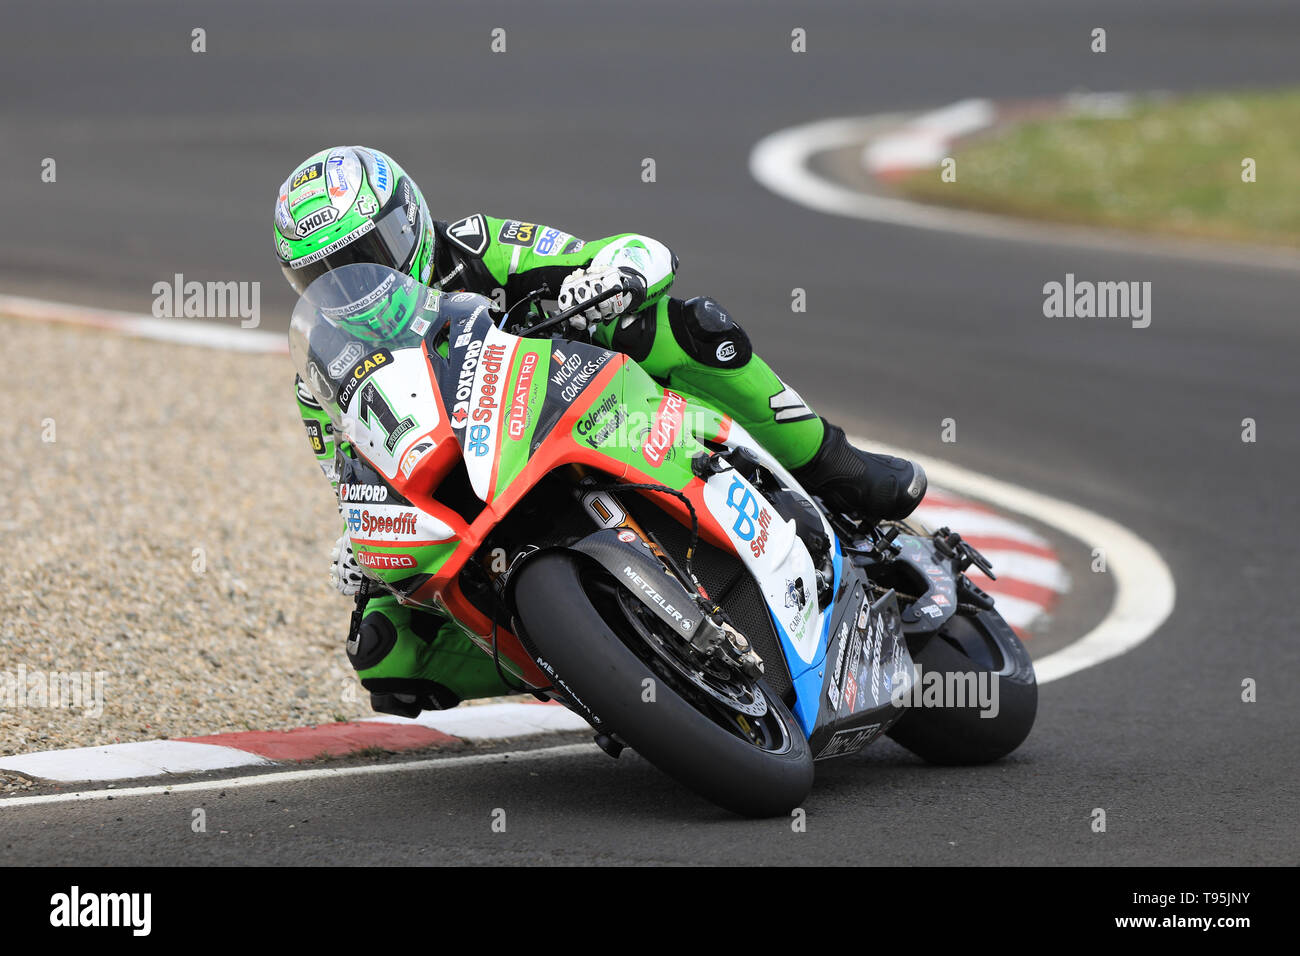 Portrush, Northern Ireland. 16th May, 2019. International North West 200 Motorcycle road racing, Thursday practice and evening racing; Glenn Irwin sets a new Unofficial lap record on the Quattro Plant Wicked Coatings Kawasaki during the SuperBike qualifying session Credit: Action Plus Sports/Alamy Live News - Stock Image